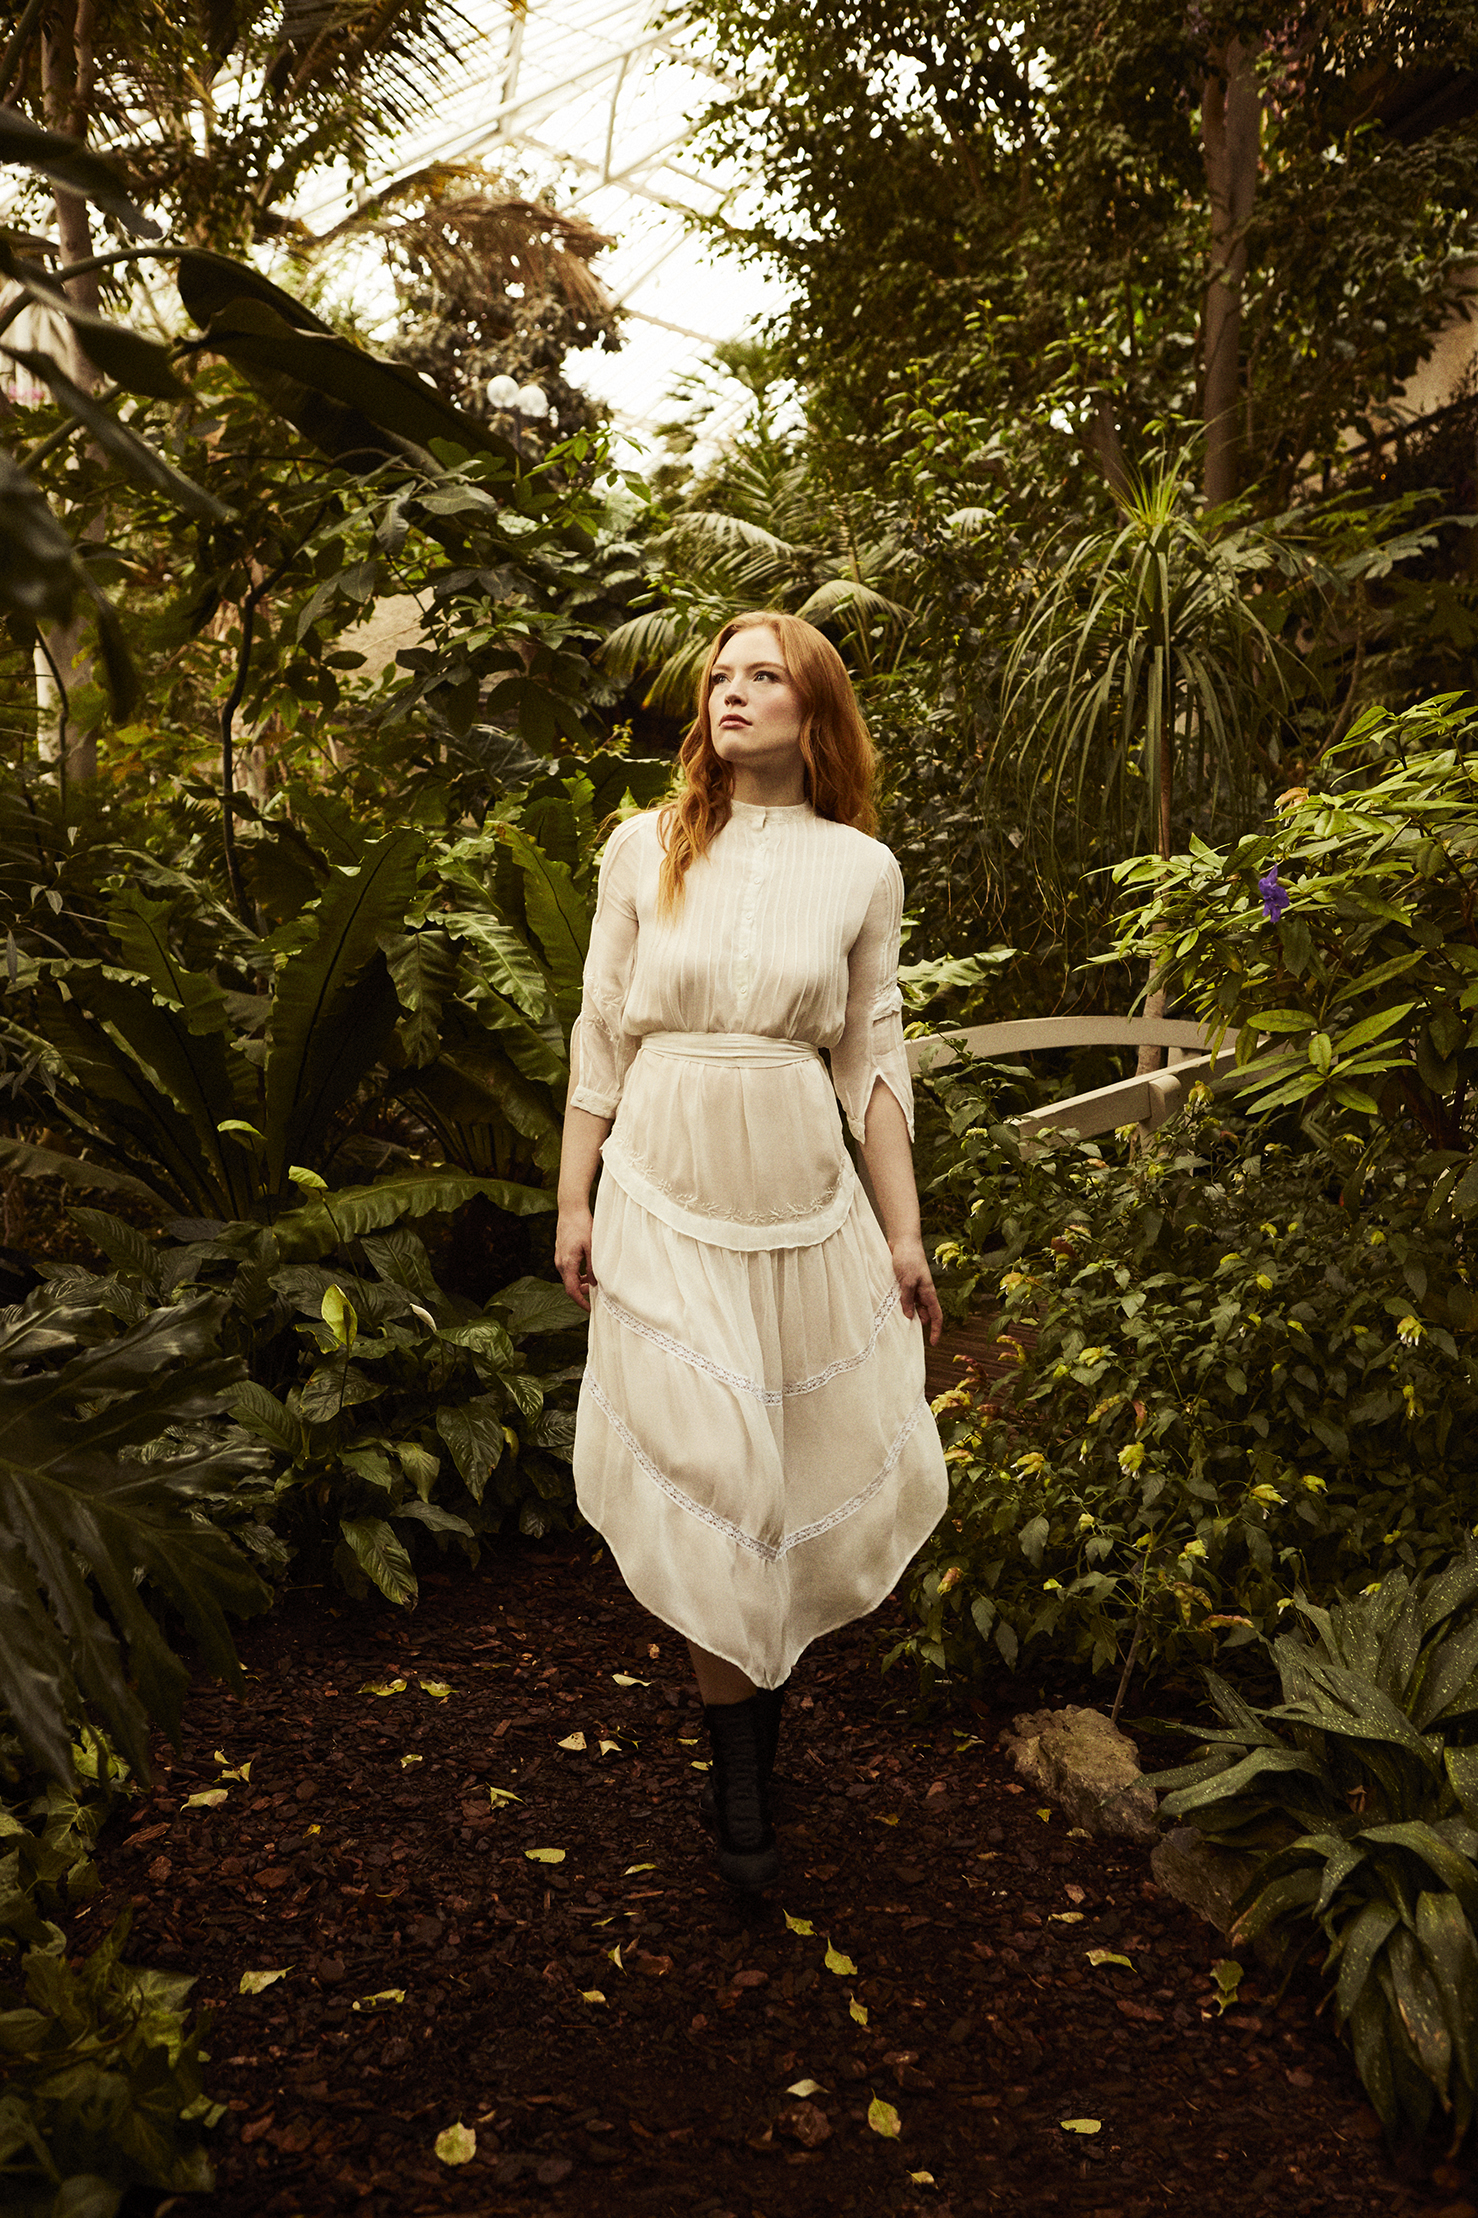 2019_01_11_FreyaRidings_CARD_Shot1_144 RT.jpg